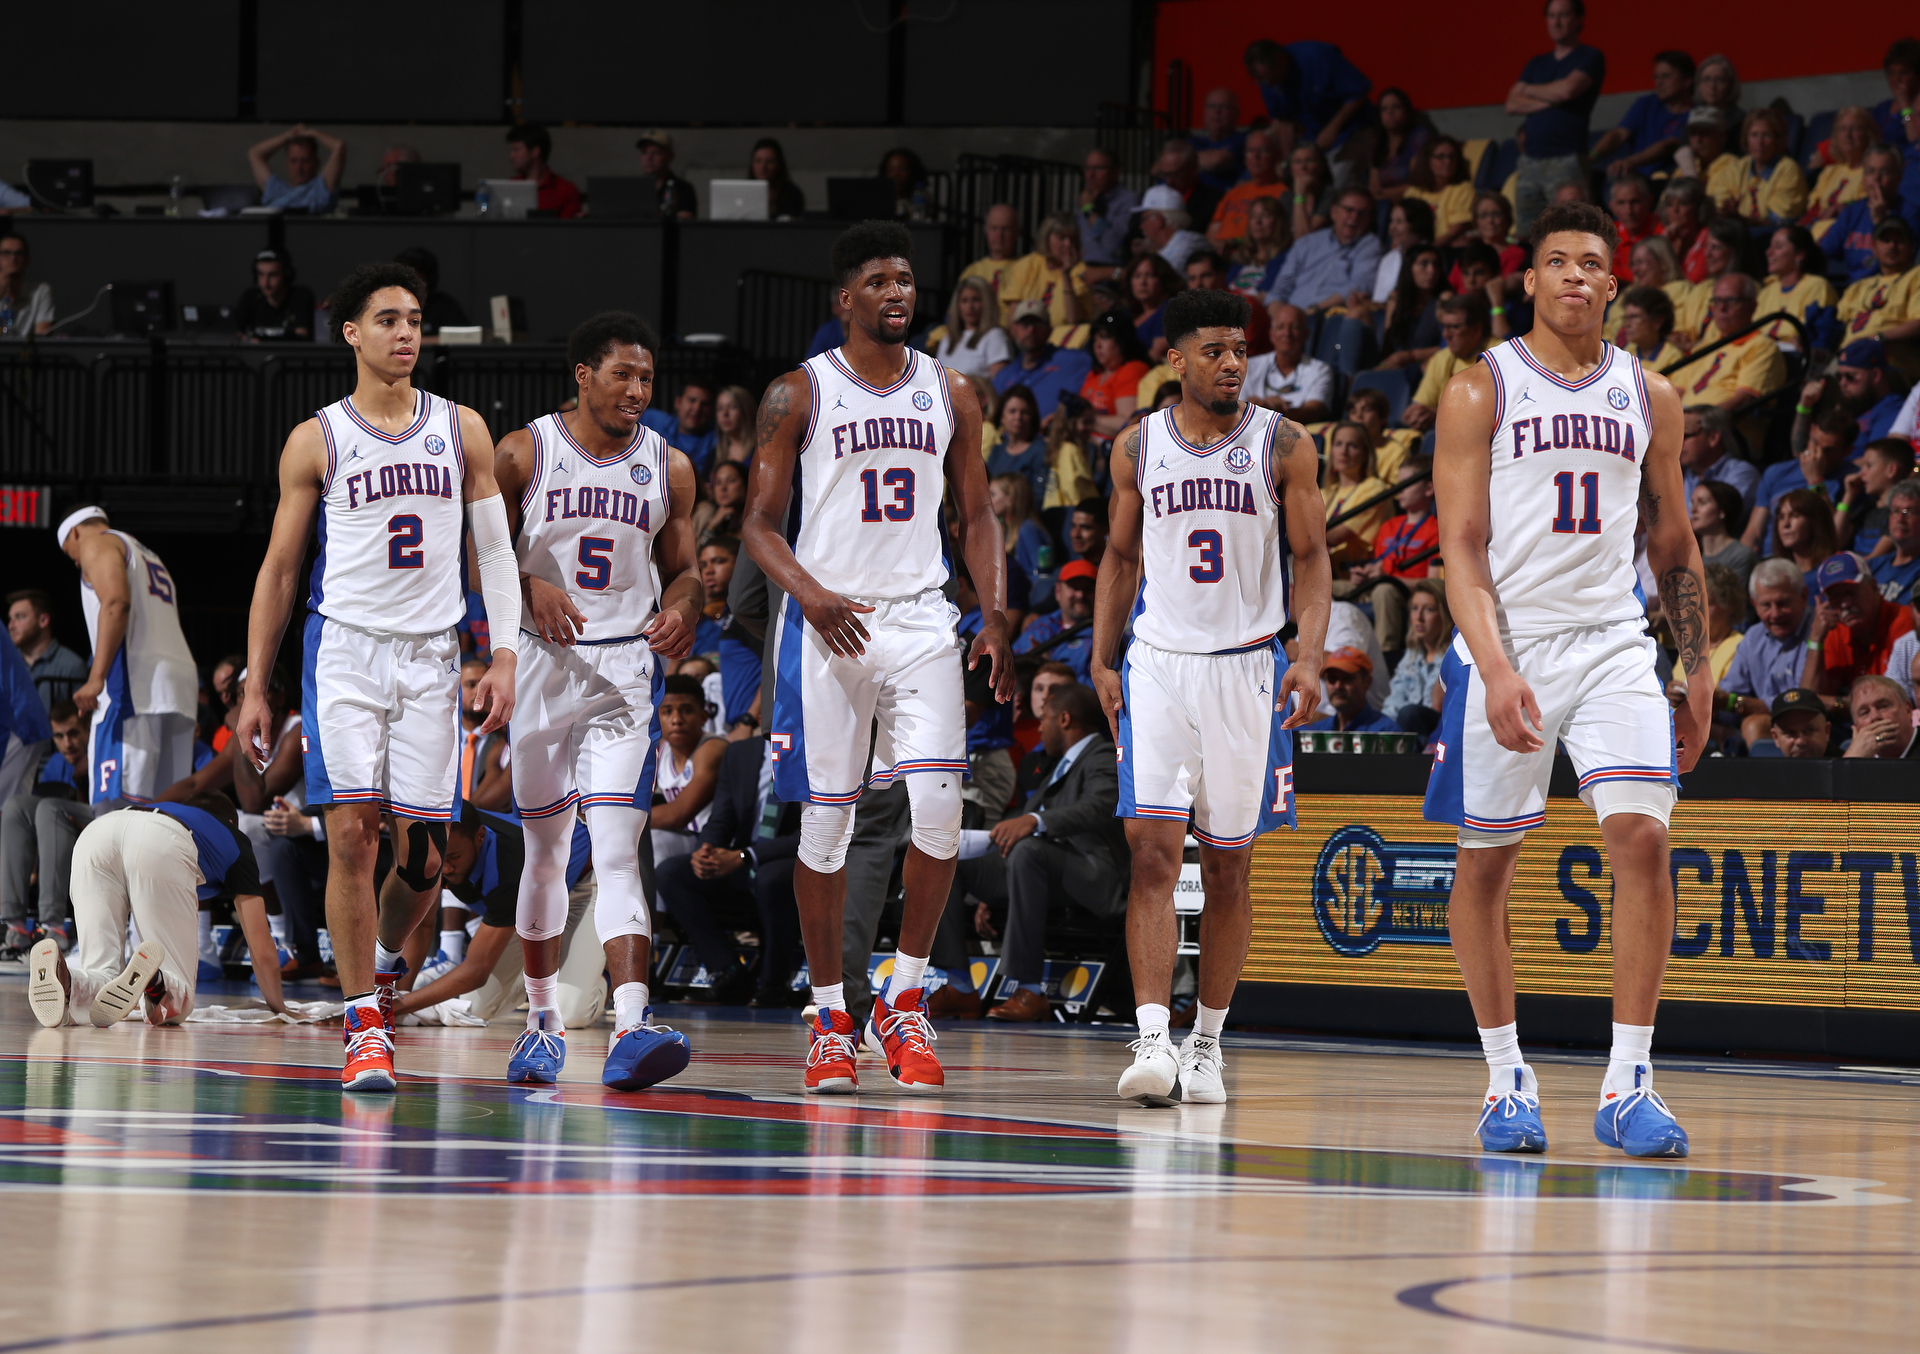 4a4a59f093a The Gators (from left: Andrew Nembhard, Kevaughn Allen, Kevarrius Hayes,  Jalen Hudson and Keyontae Johnson) looked pretty good in their throwback  1994 ...